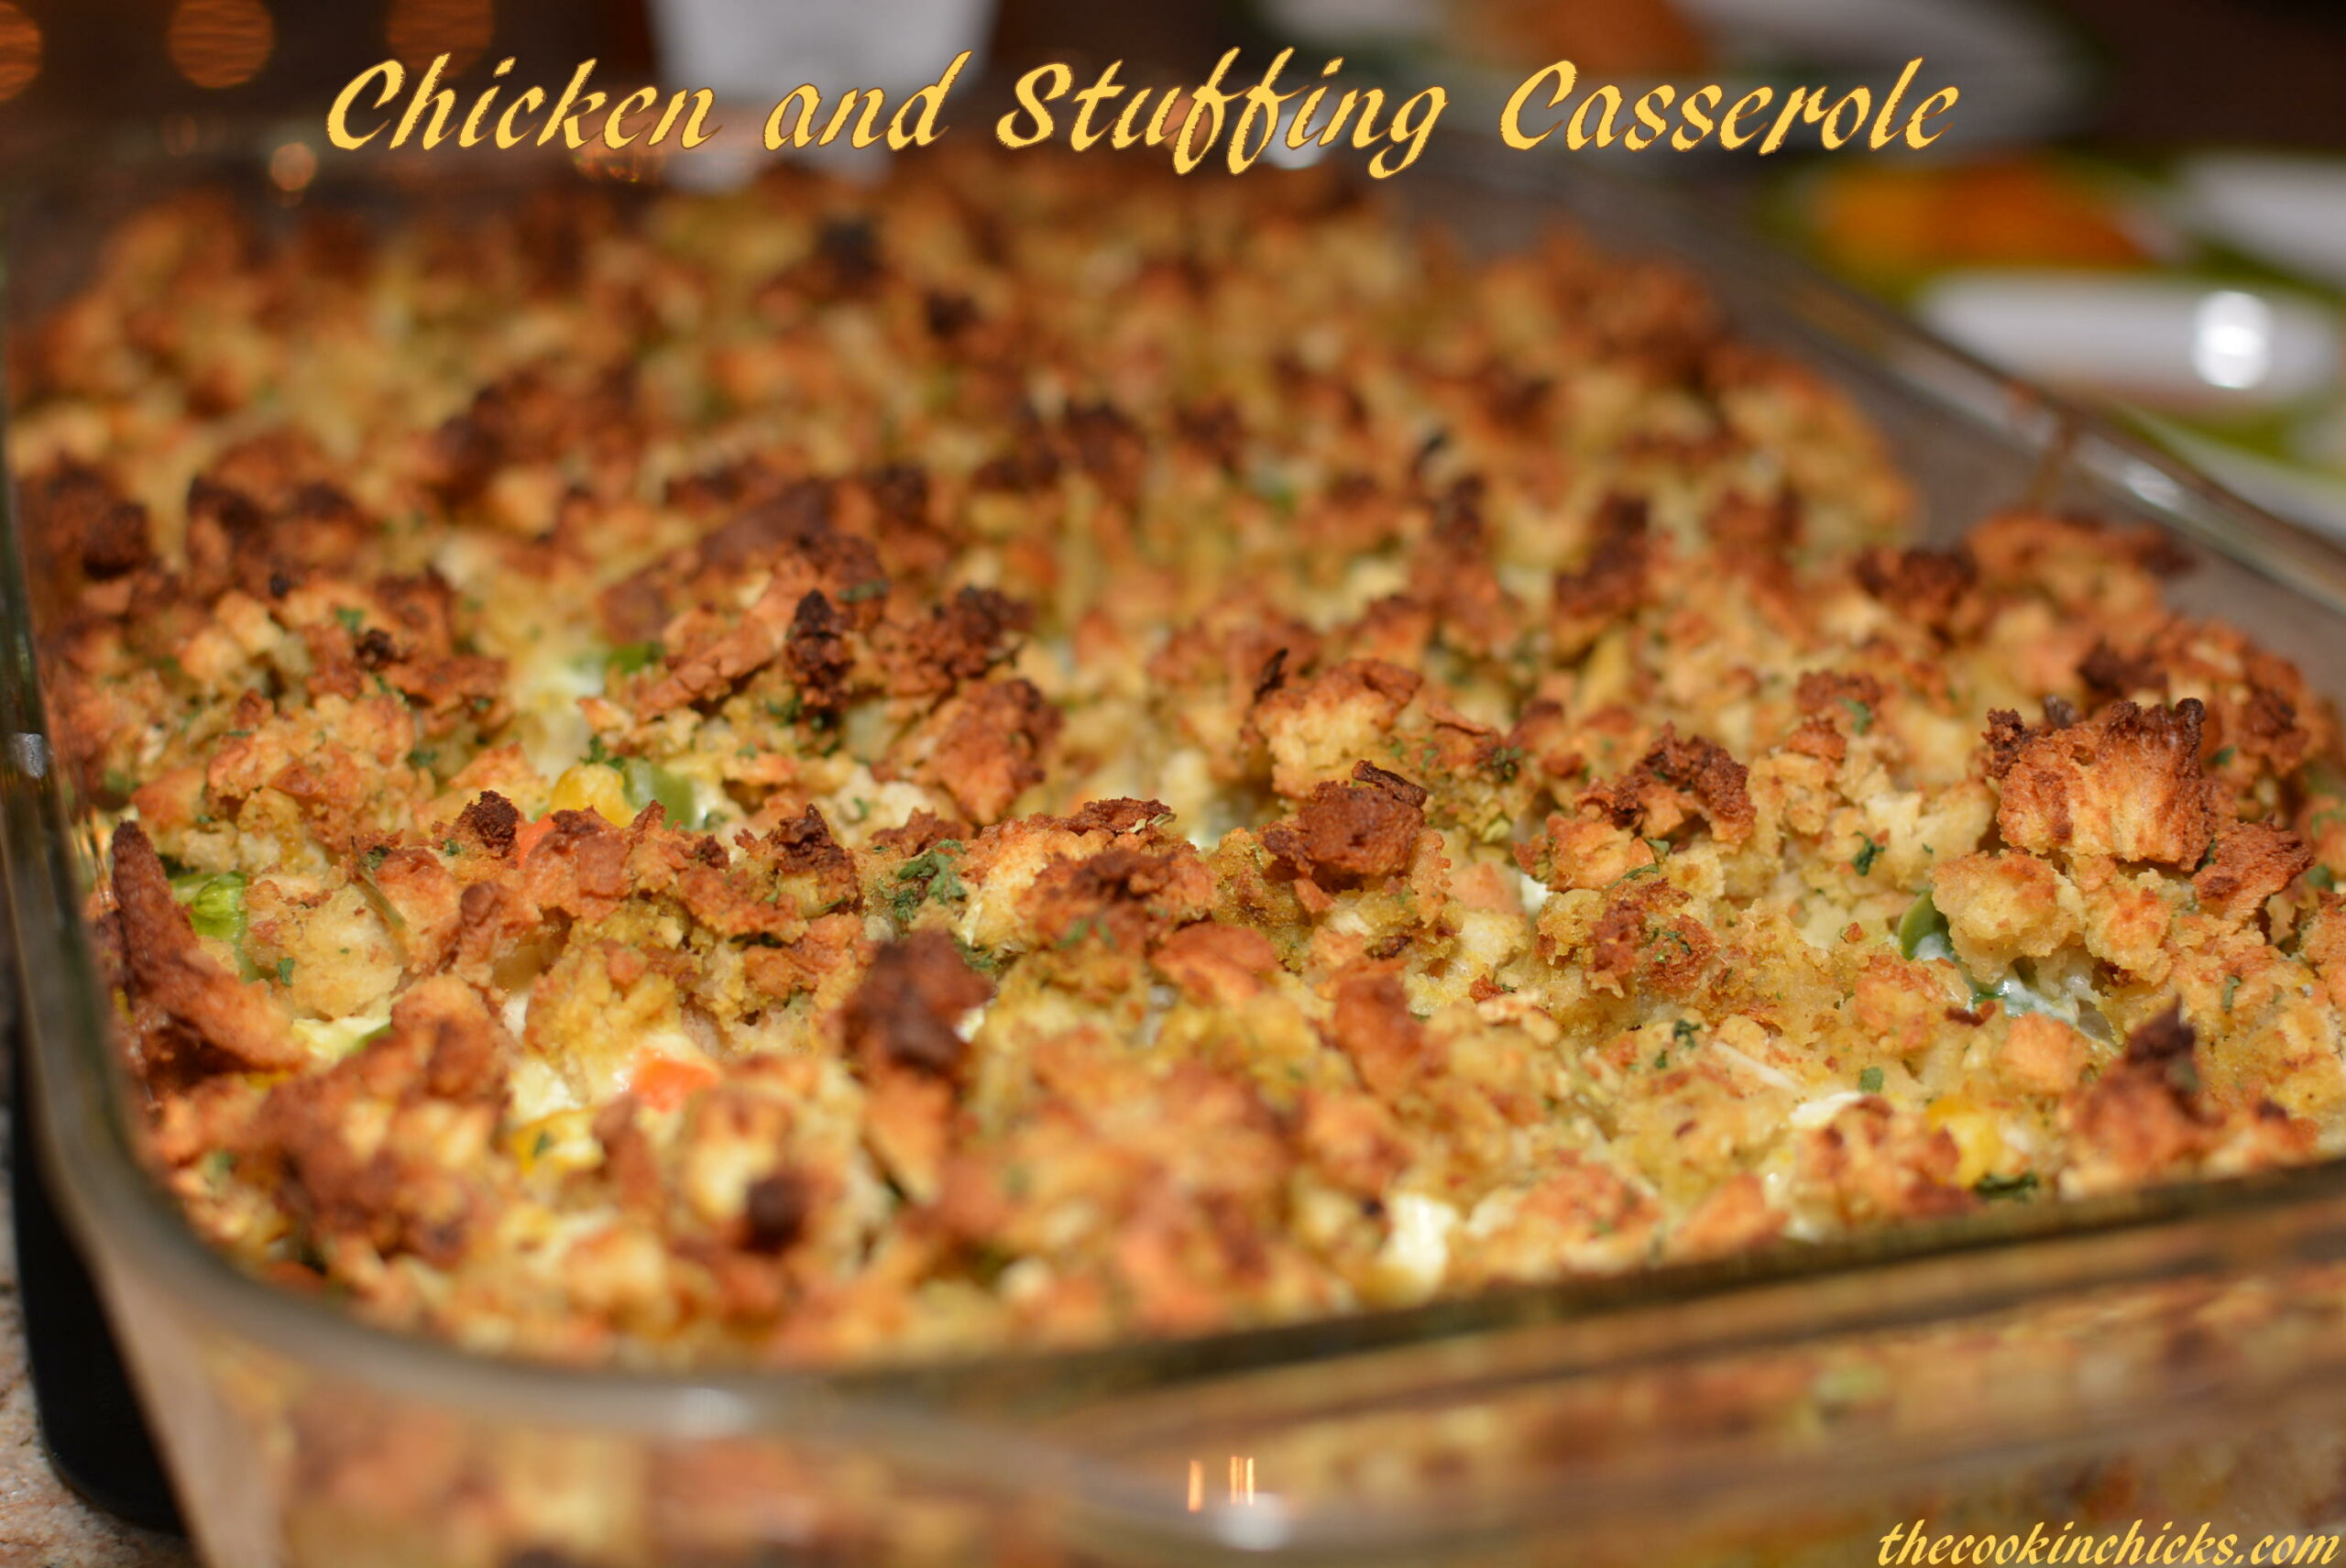 Chicken breast and dressing